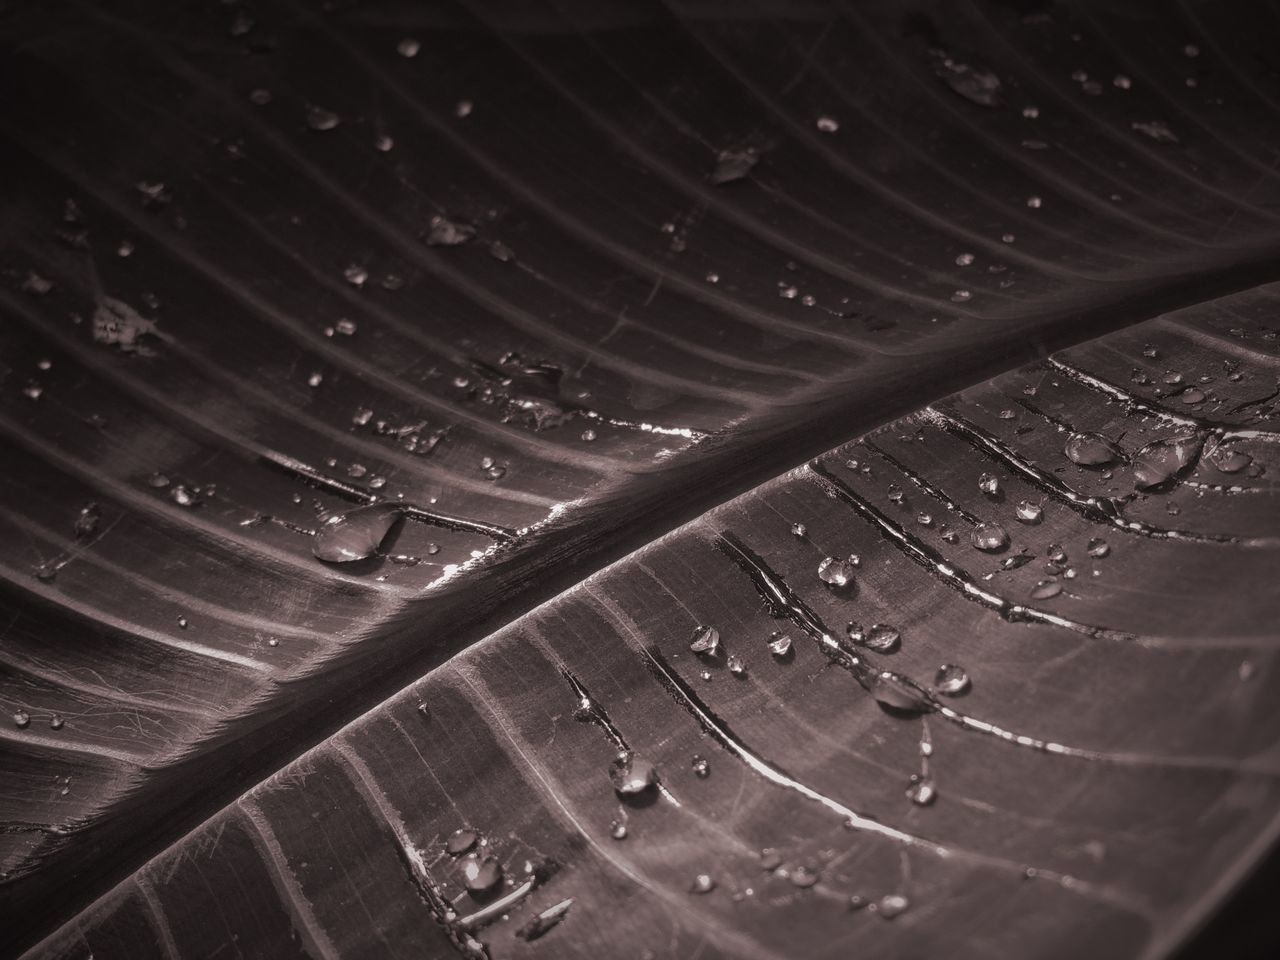 Backgrounds Blackandwhite Close-up Cropped Dark Detail Drops EyeEm Nature Lover Focus On Foreground Full Frame Illuminated Leaf Monochrome Nature Night No People P510 Palm Trees Rain Shootermag Tadaa Community Tadaa Friends Weather Showcase July